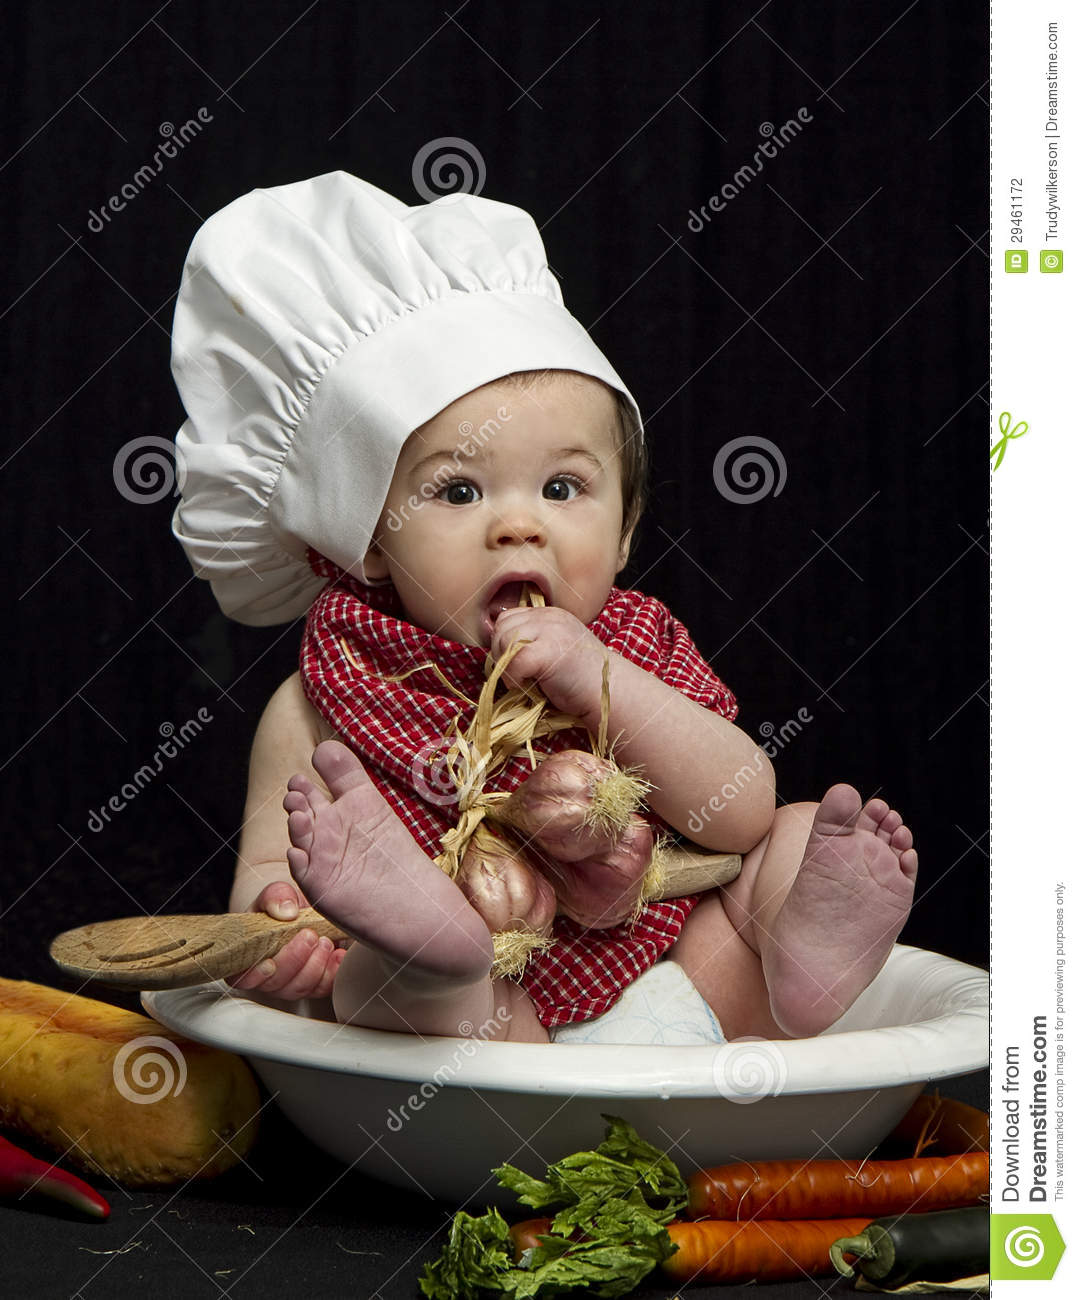 Nerdy Girl Wallpaper Hd Free Download Baby Chef Eating Stock Photography Image 29461172